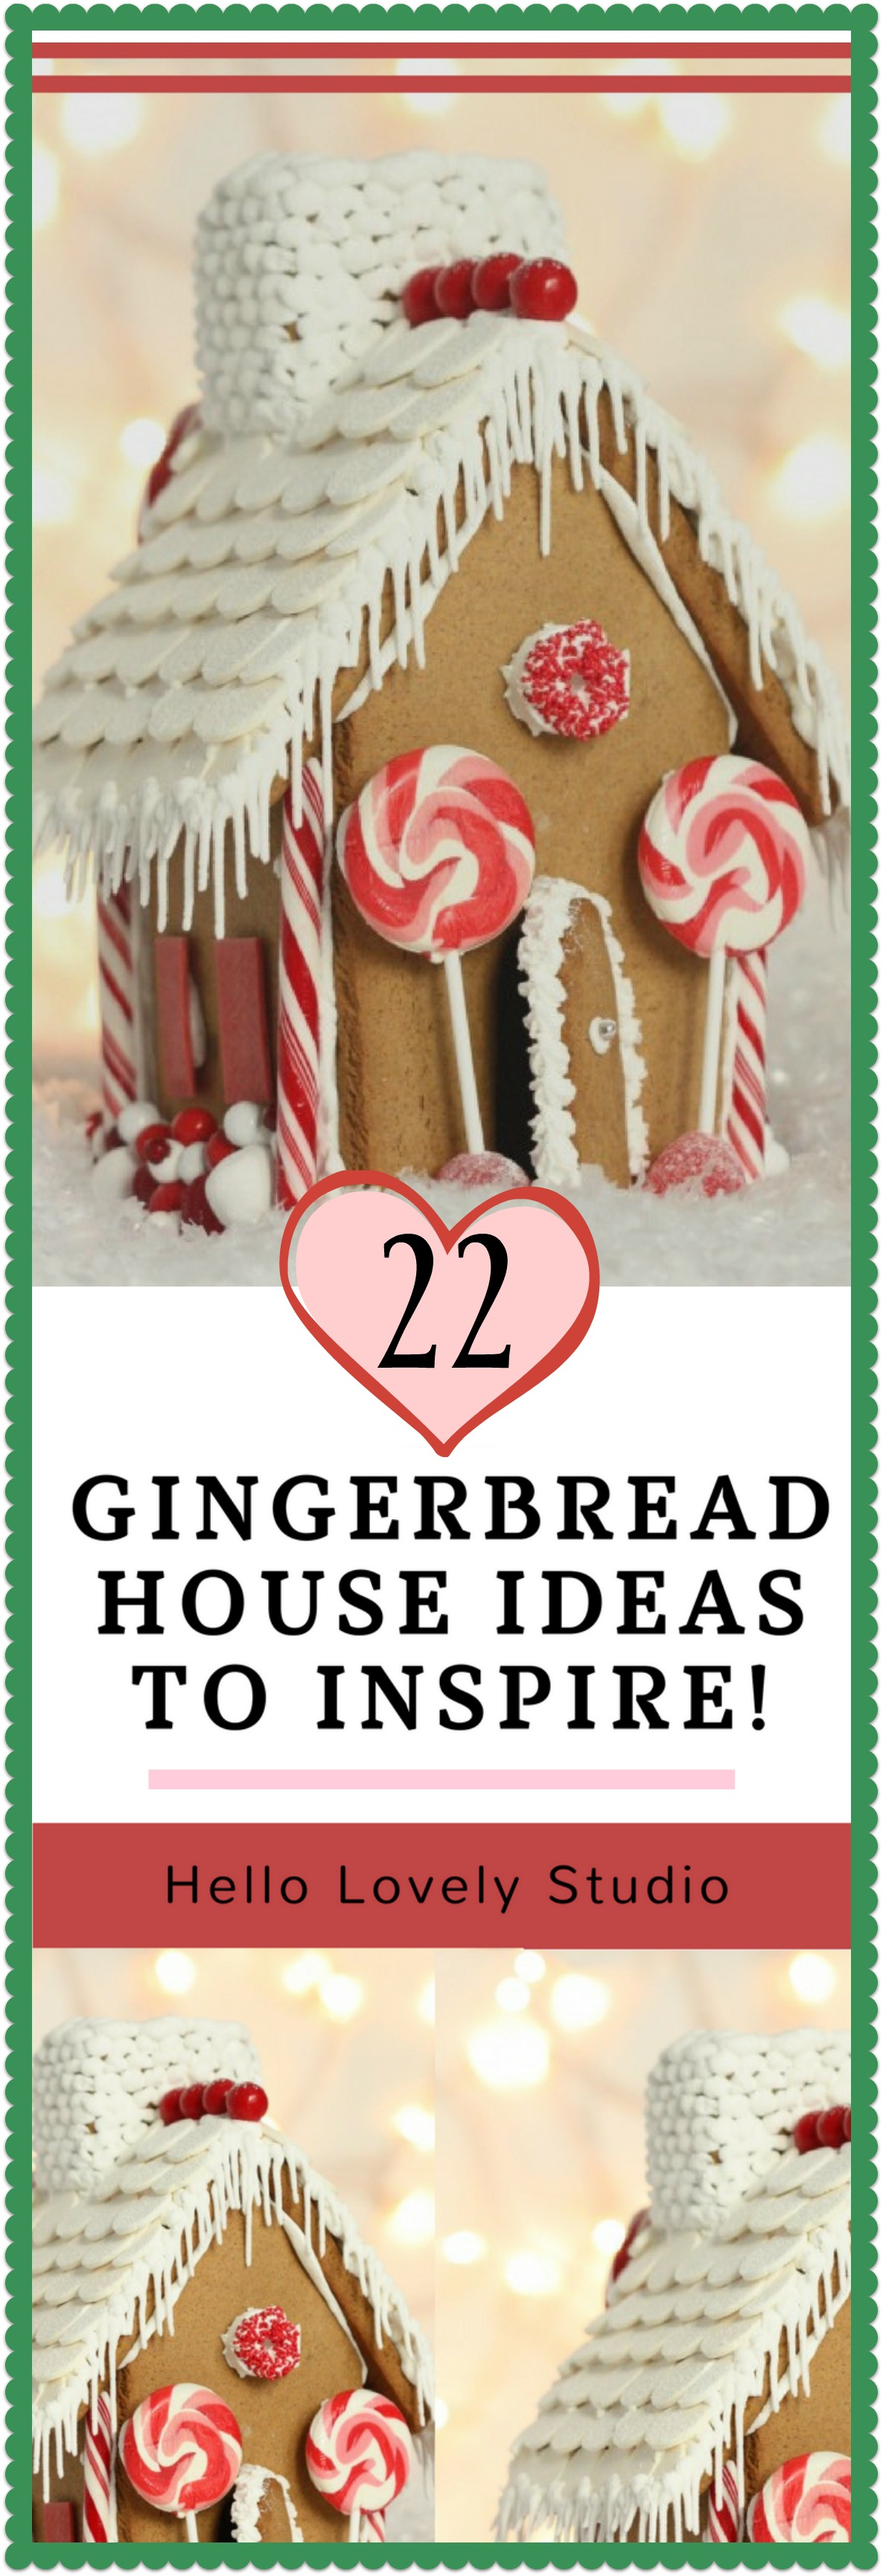 22 Gingerbread House Ideas to Inspire - Hello Lovely Studio